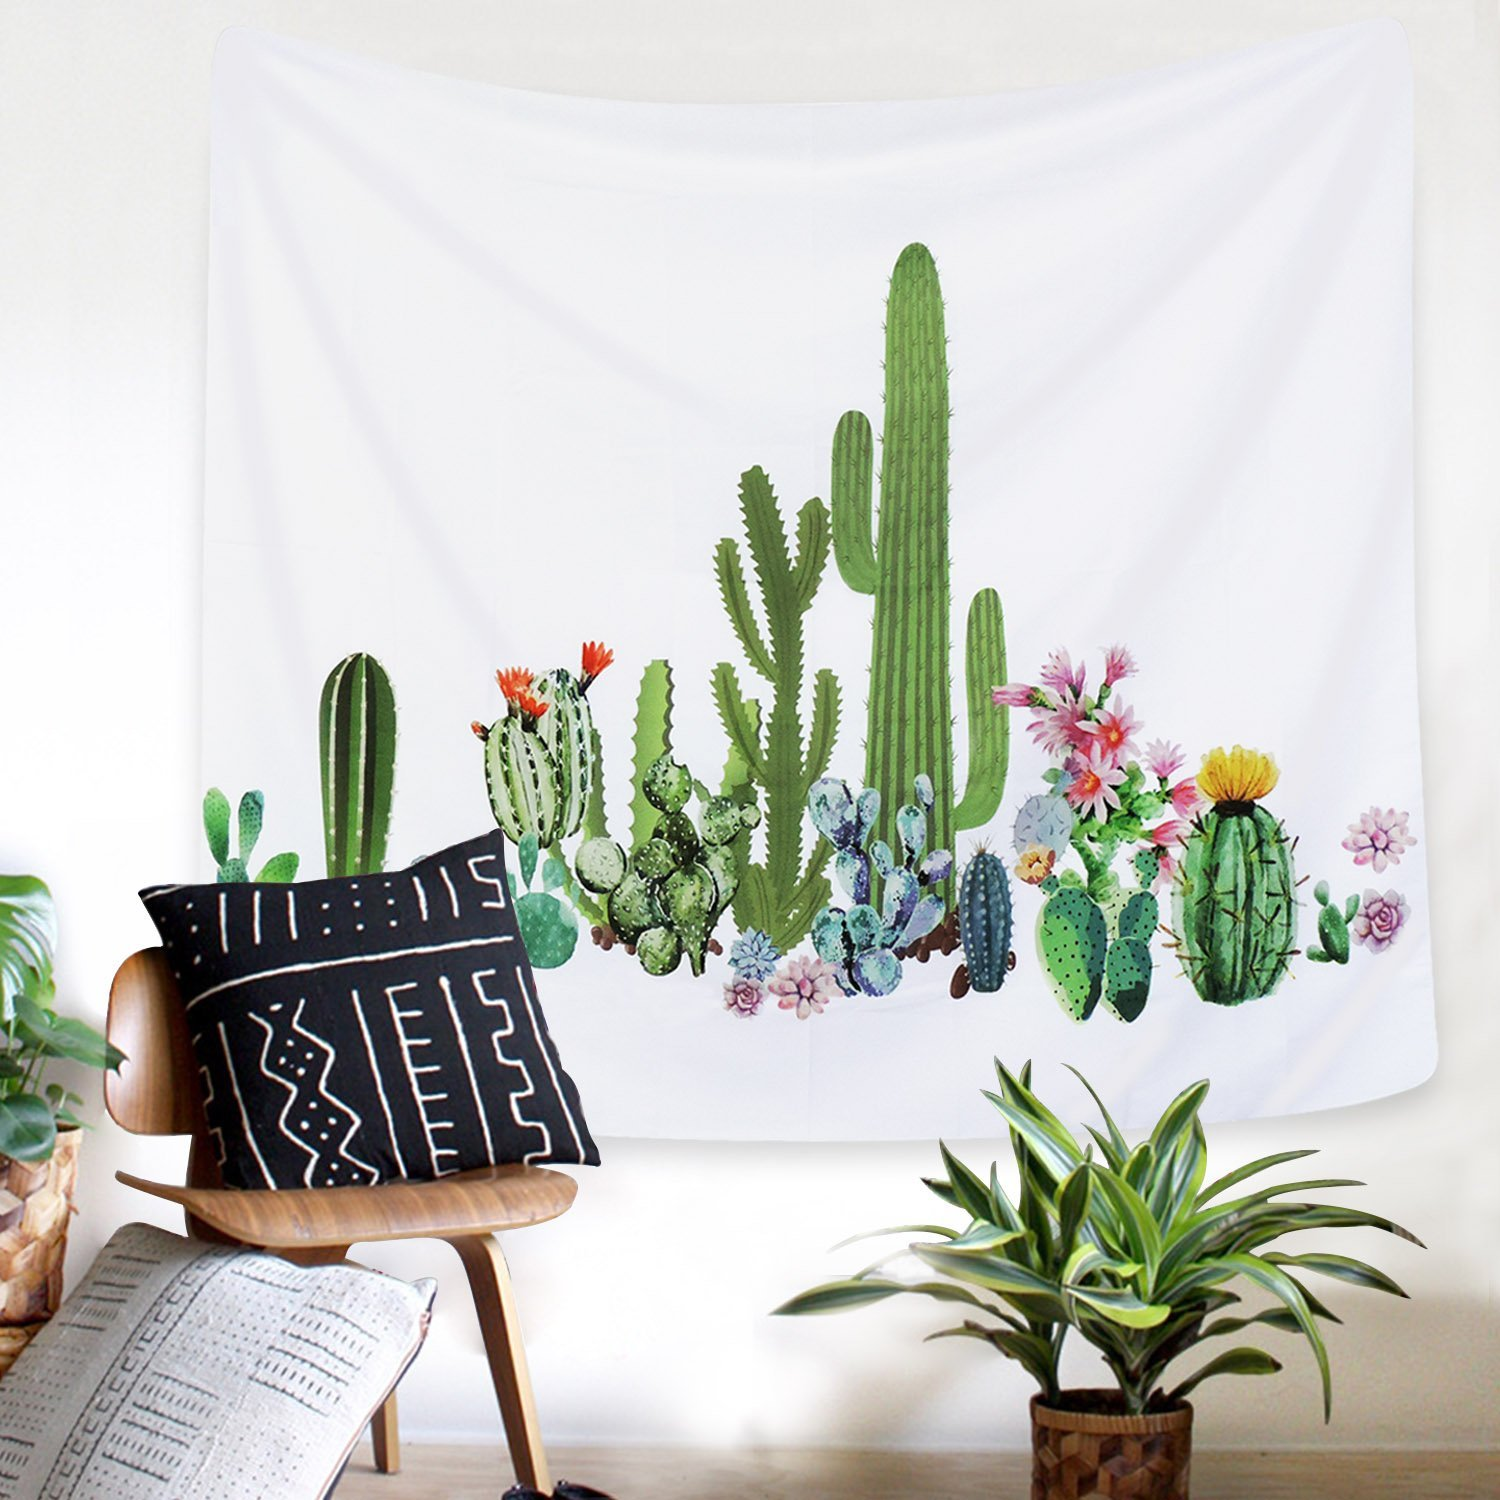 Amazon.com: Sunmner Cactus Tapestry Wall Hanging for Living Room ...